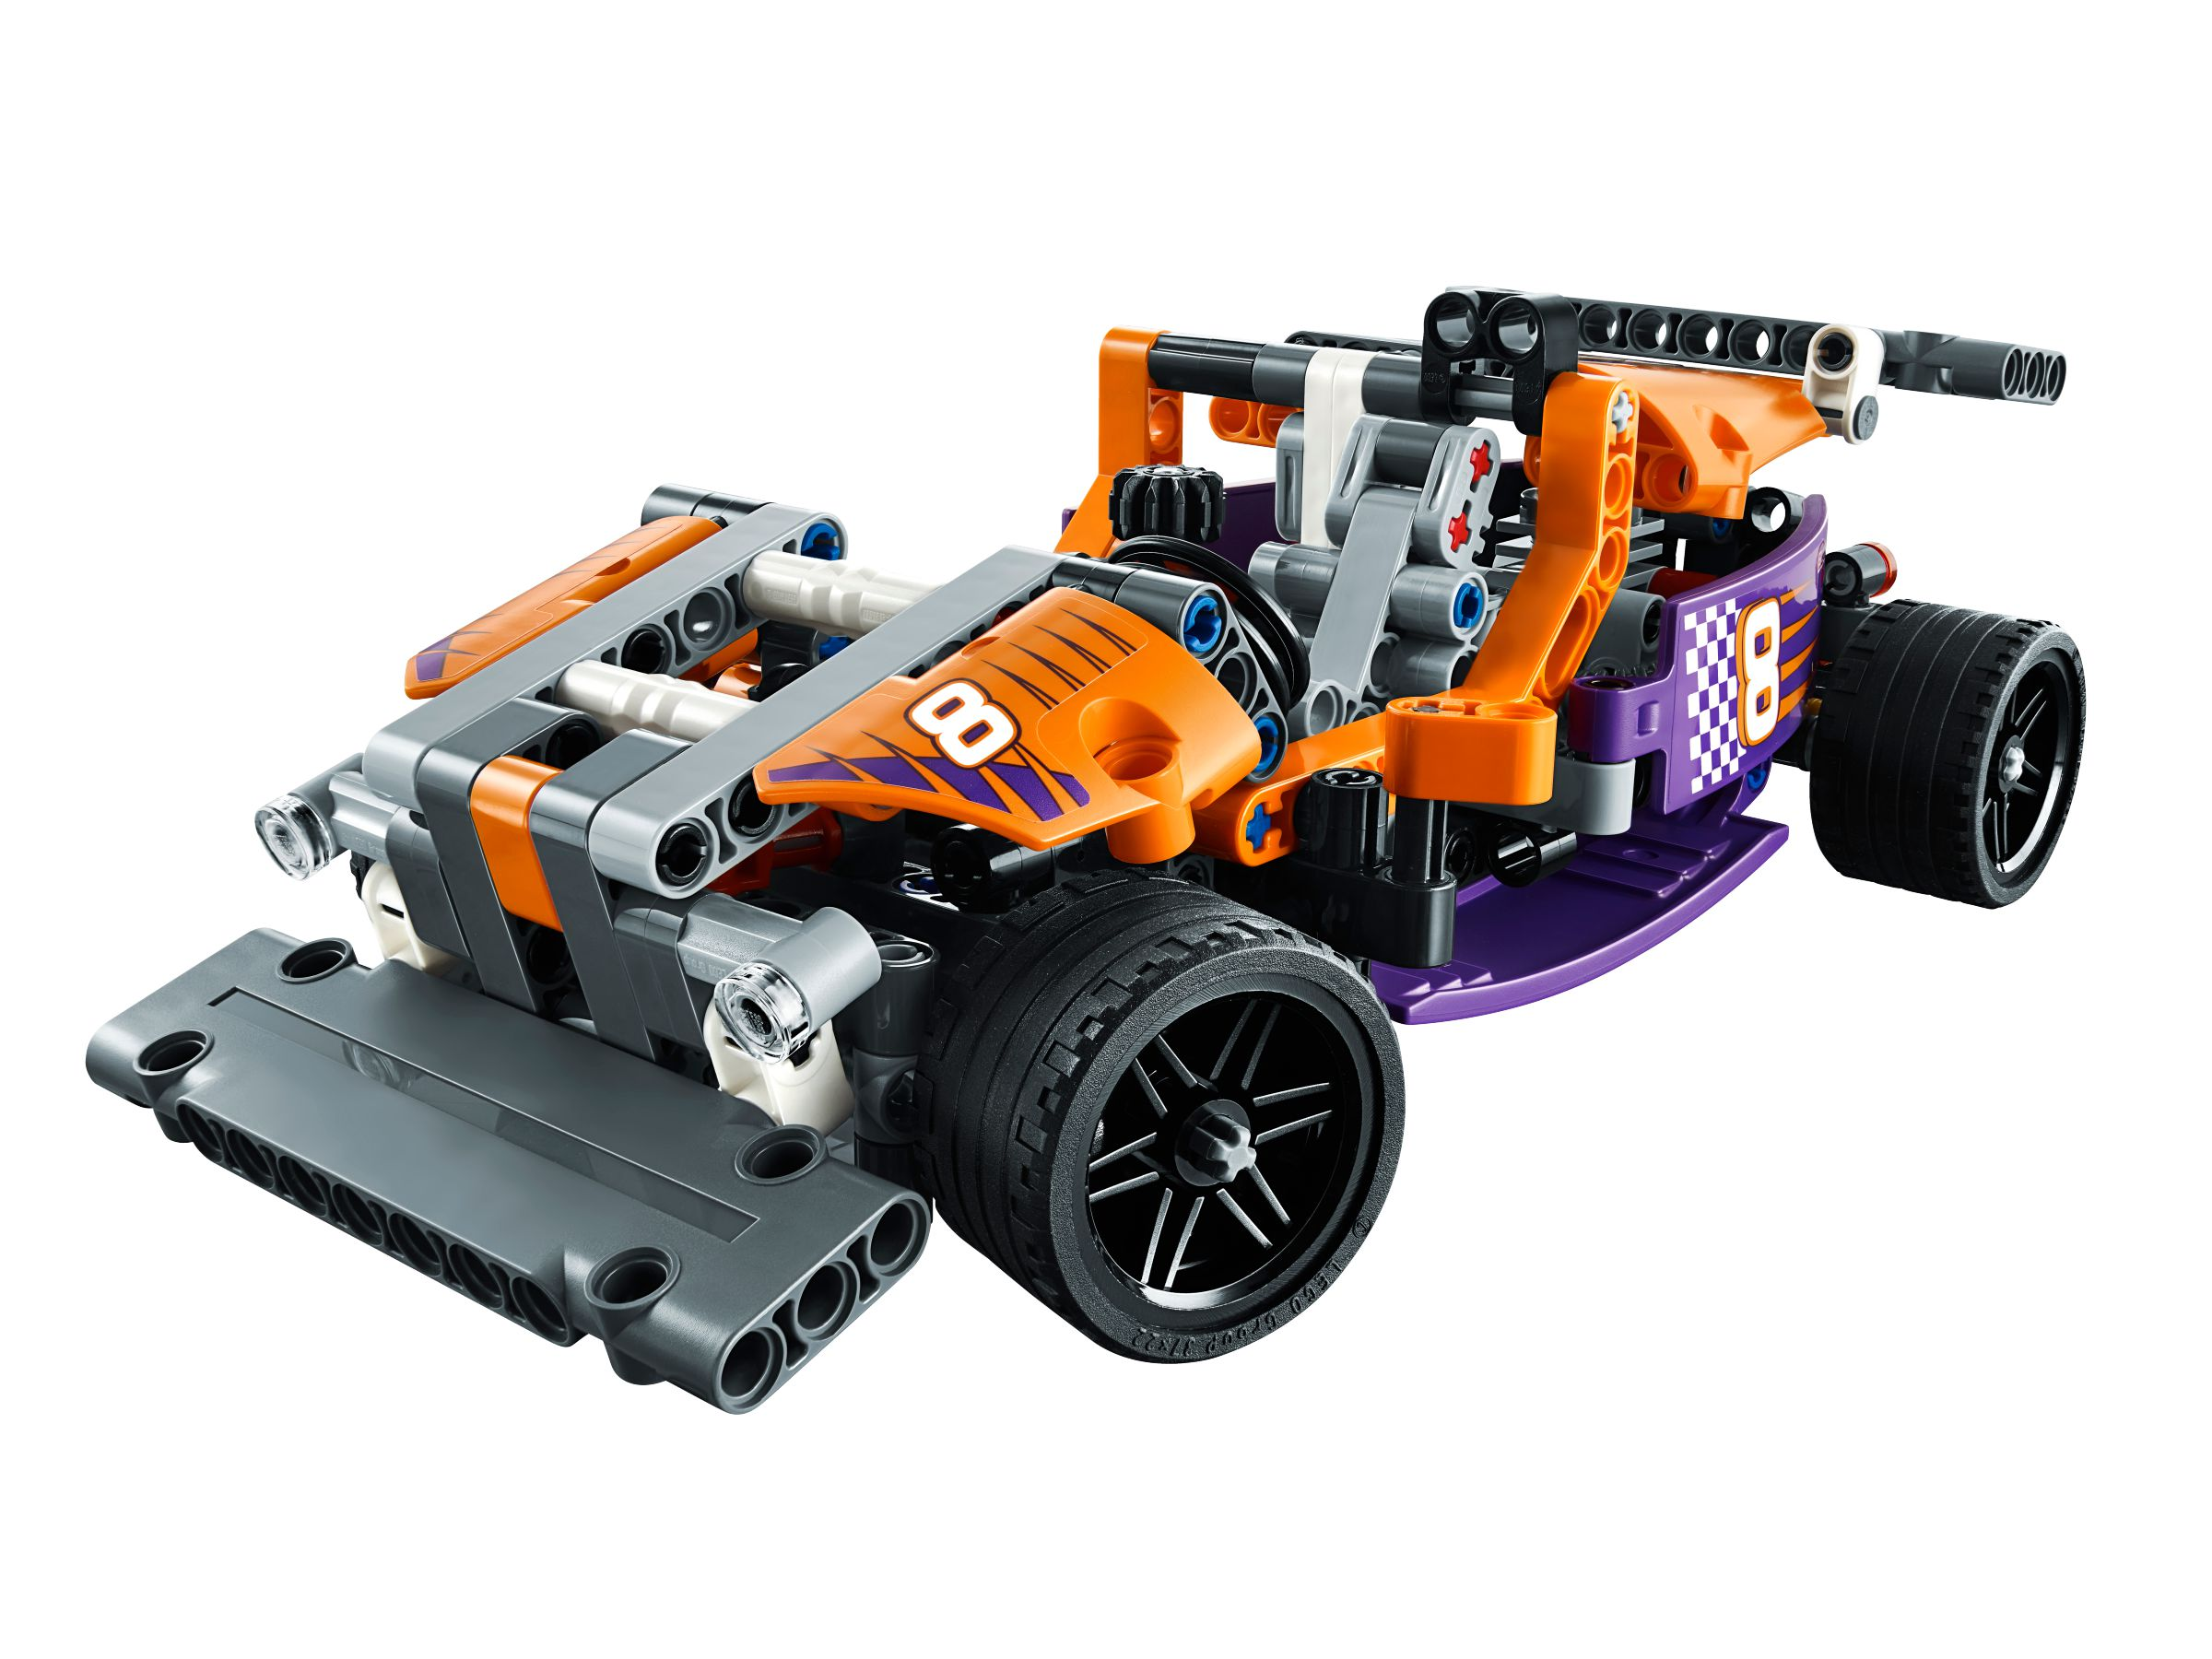 lego 42048 renn kart technic 2016 race kart brickmerge. Black Bedroom Furniture Sets. Home Design Ideas